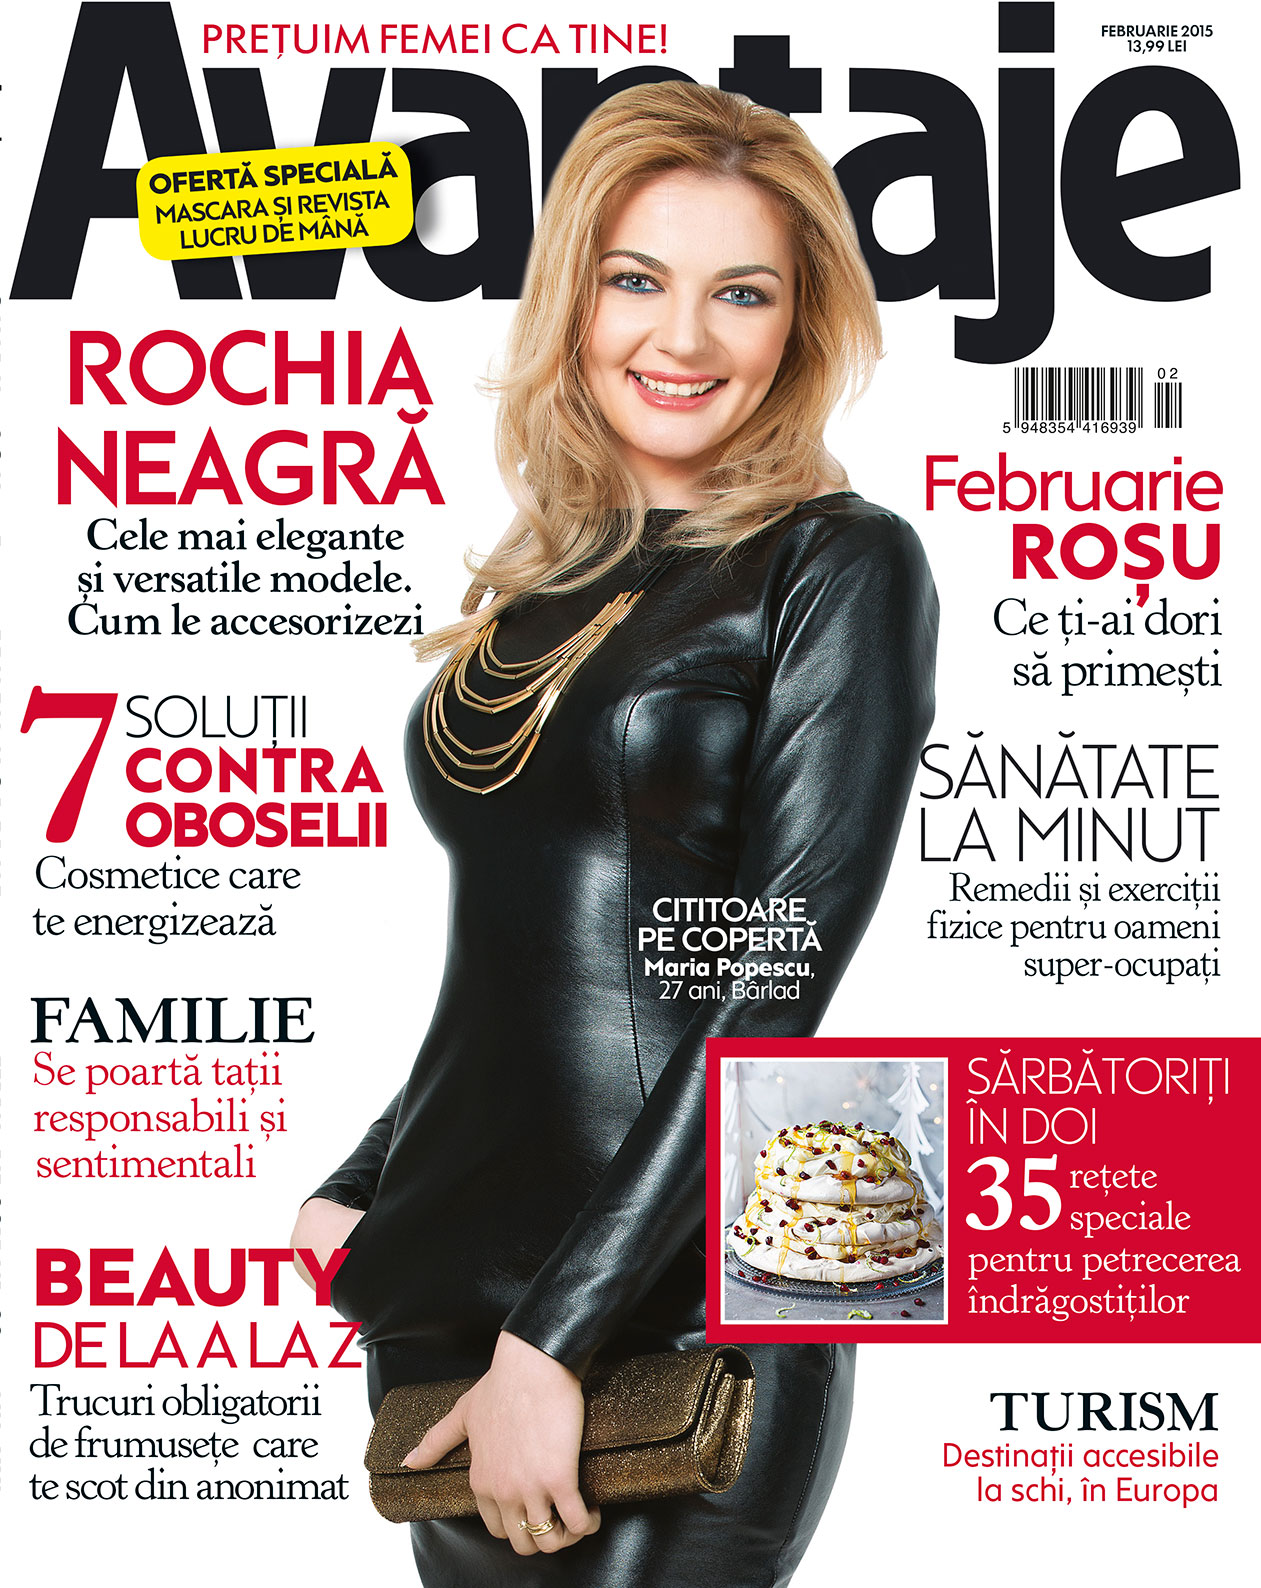 Cover-Ava-feb-web